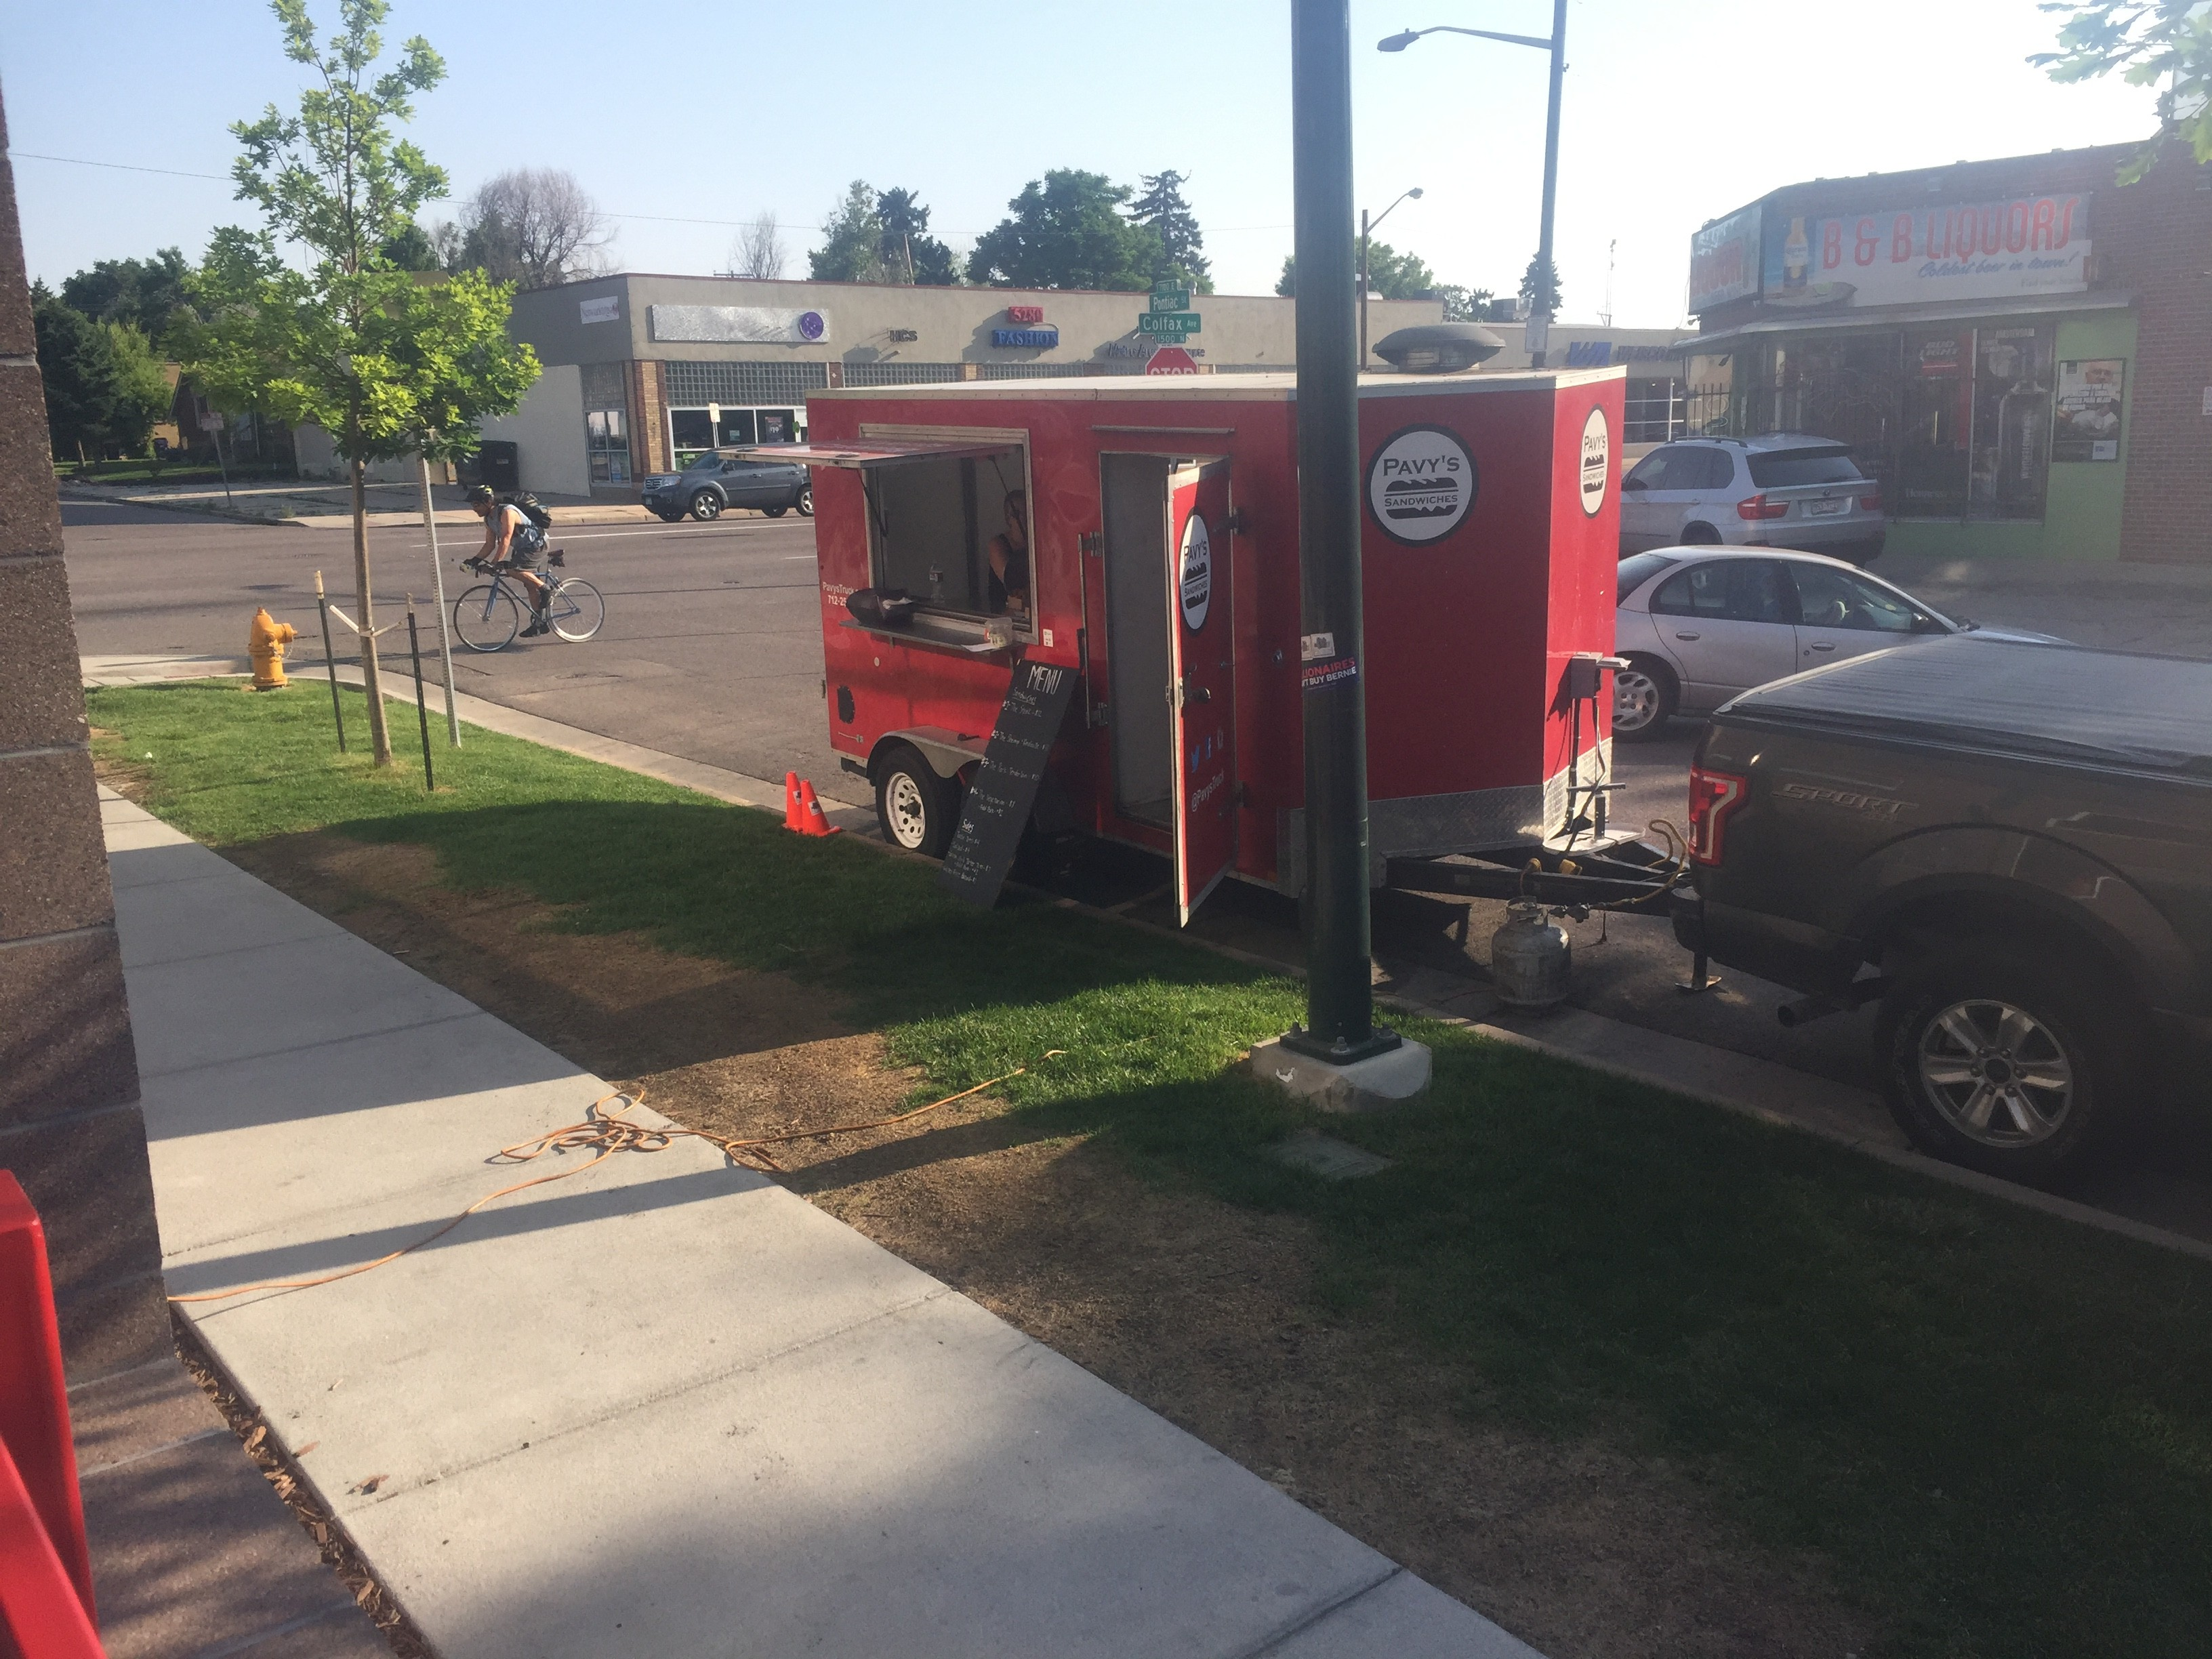 Food Truck Stops Here